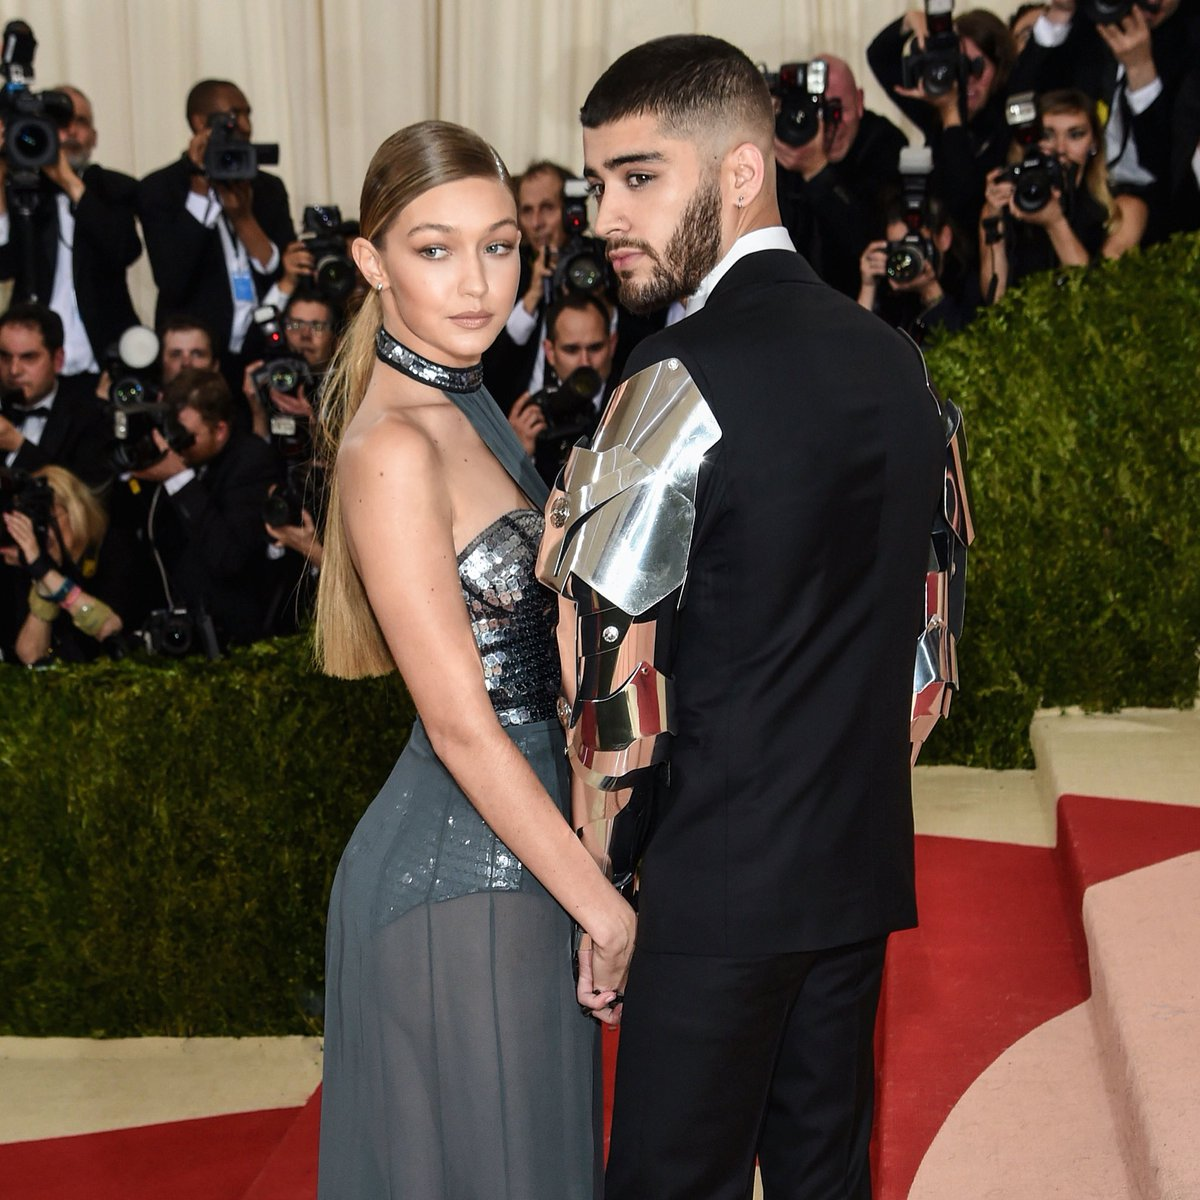 @GiGiHadid lights up the #MetGala red carpet in custom #TommyHilfiger with @zaynmalik https://t.co/UrvxJX6IKr